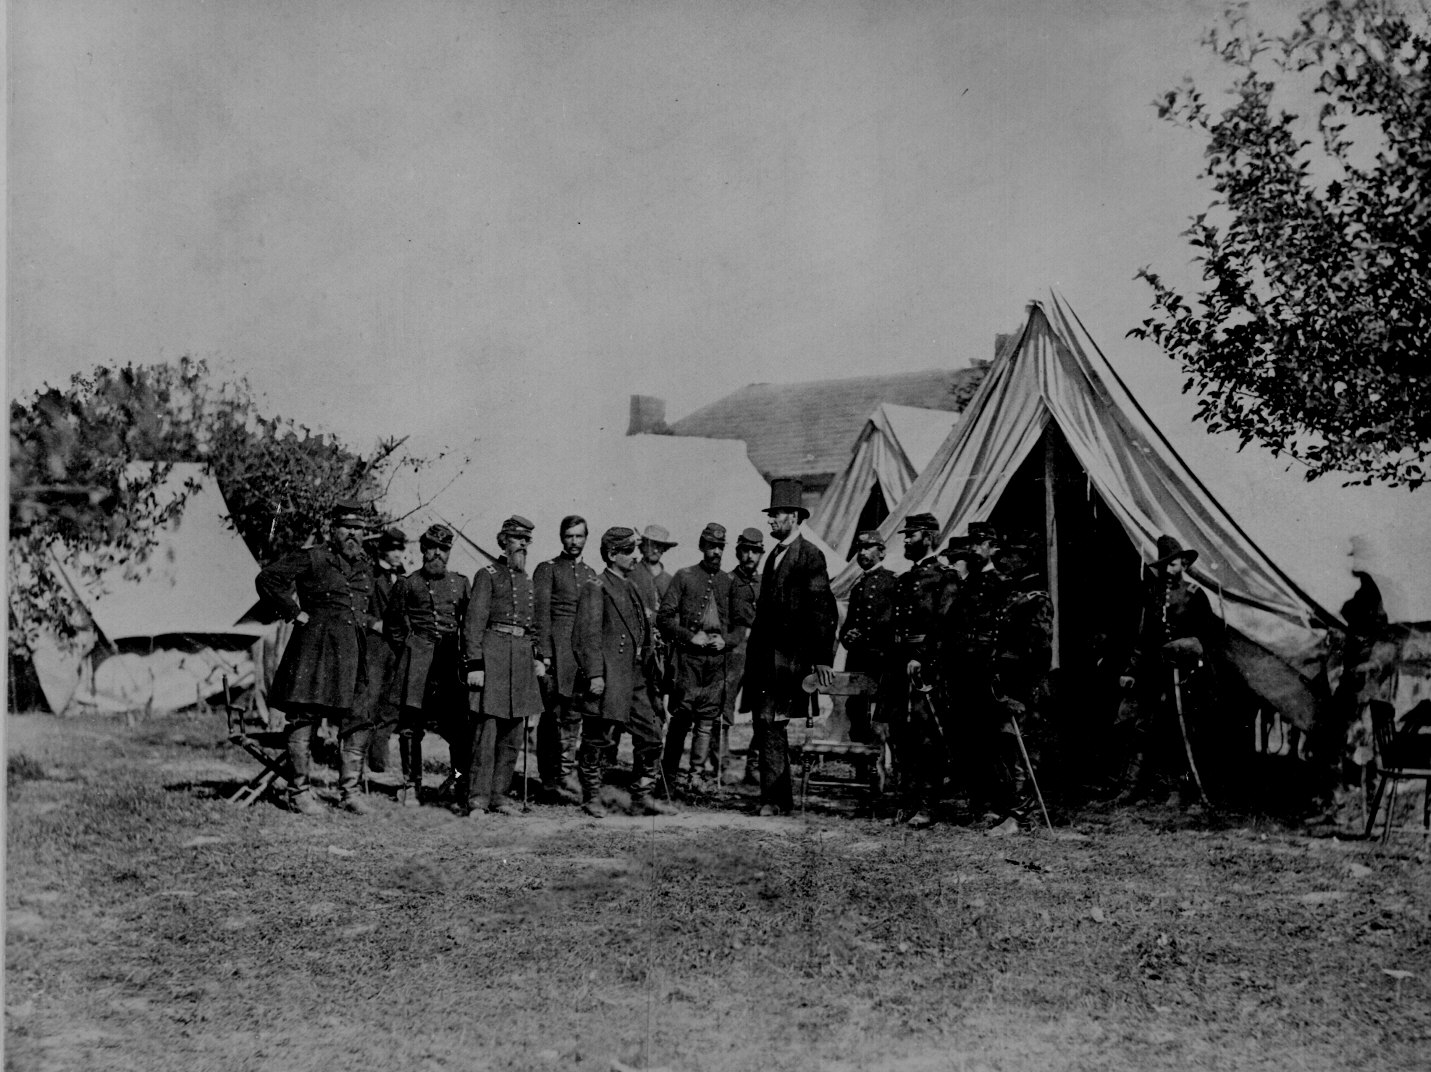 Description civil-war-021